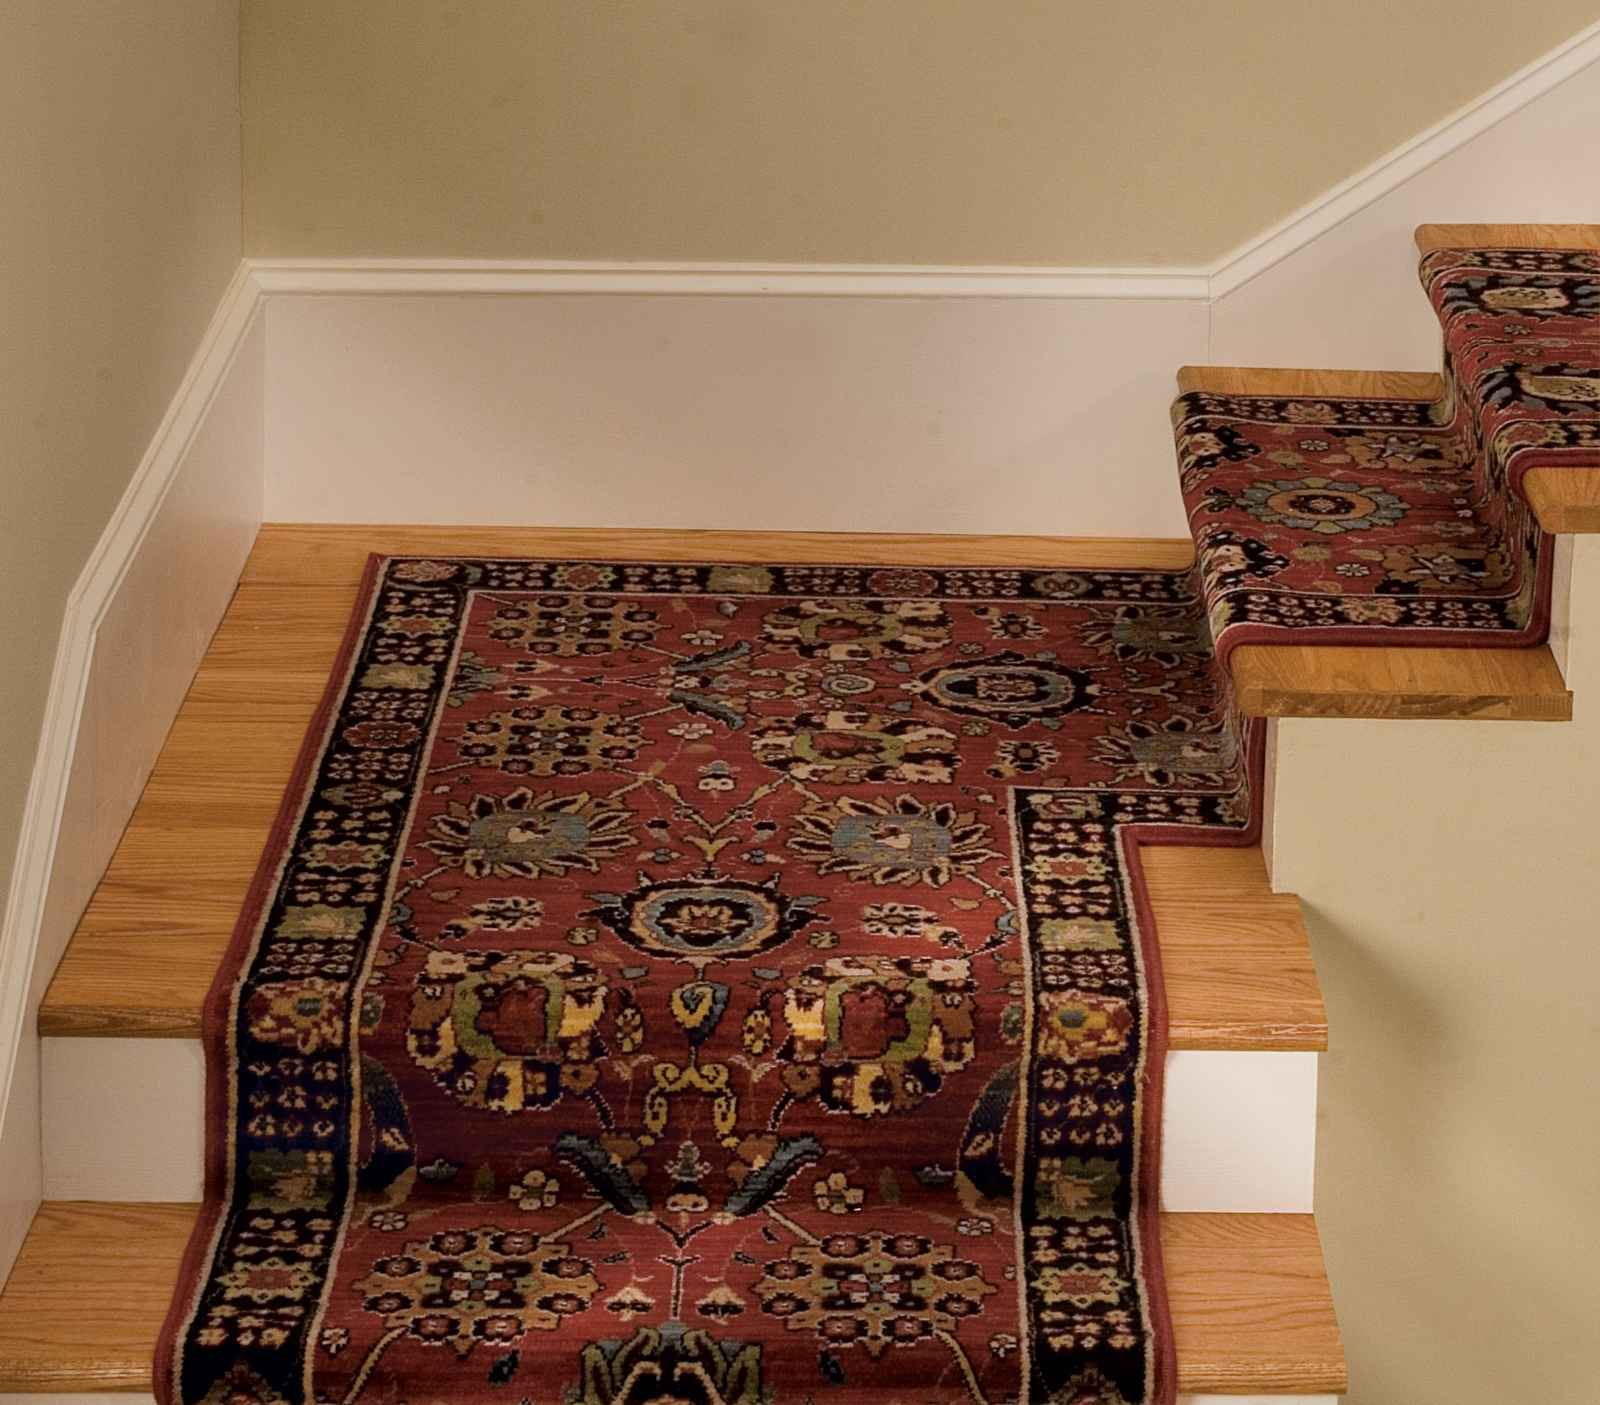 Carpet stair runner for home new home pinterest for Runners carpets and rugs